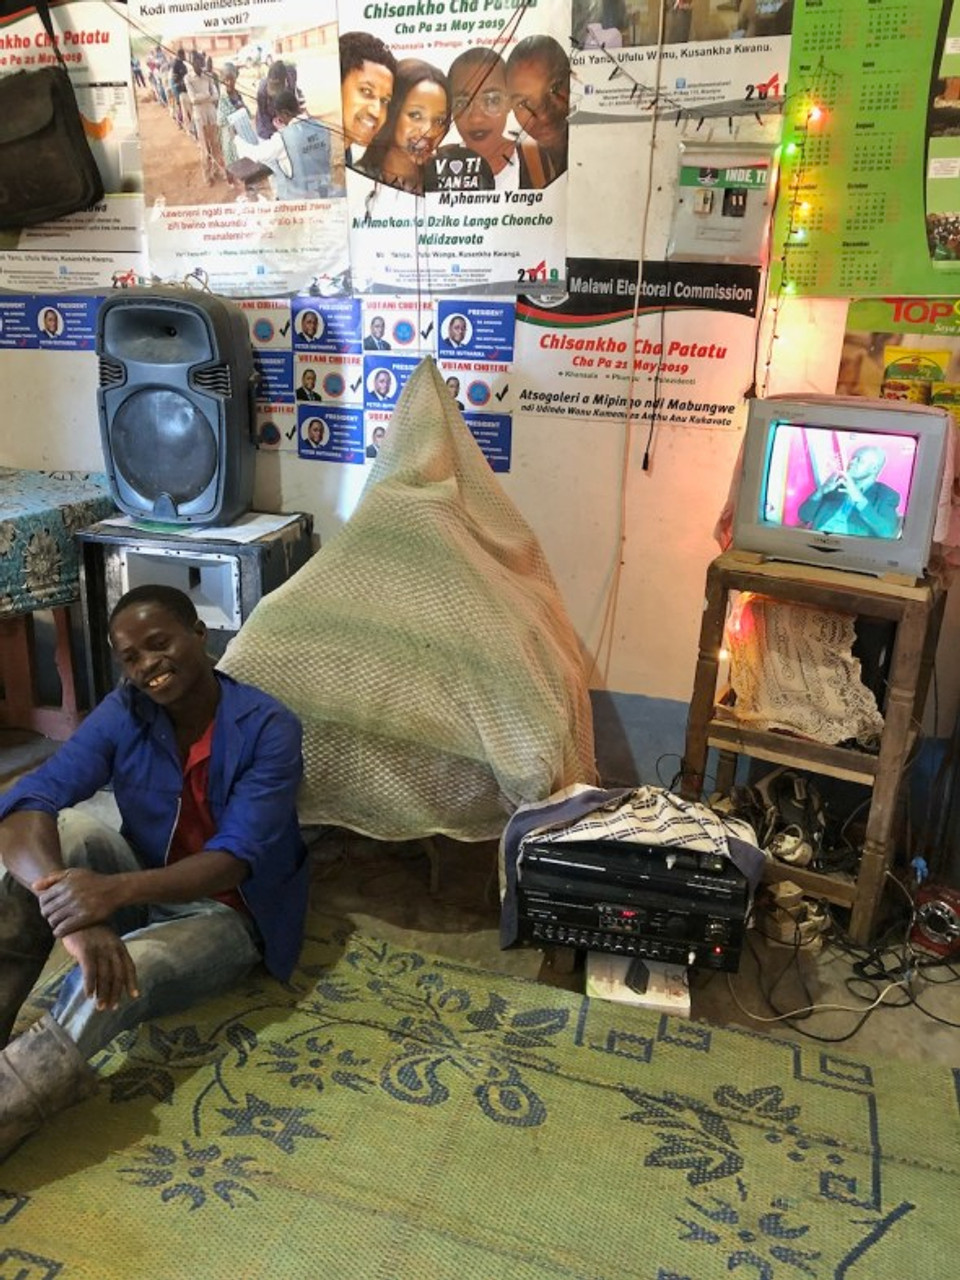 man posing with TV and radio system